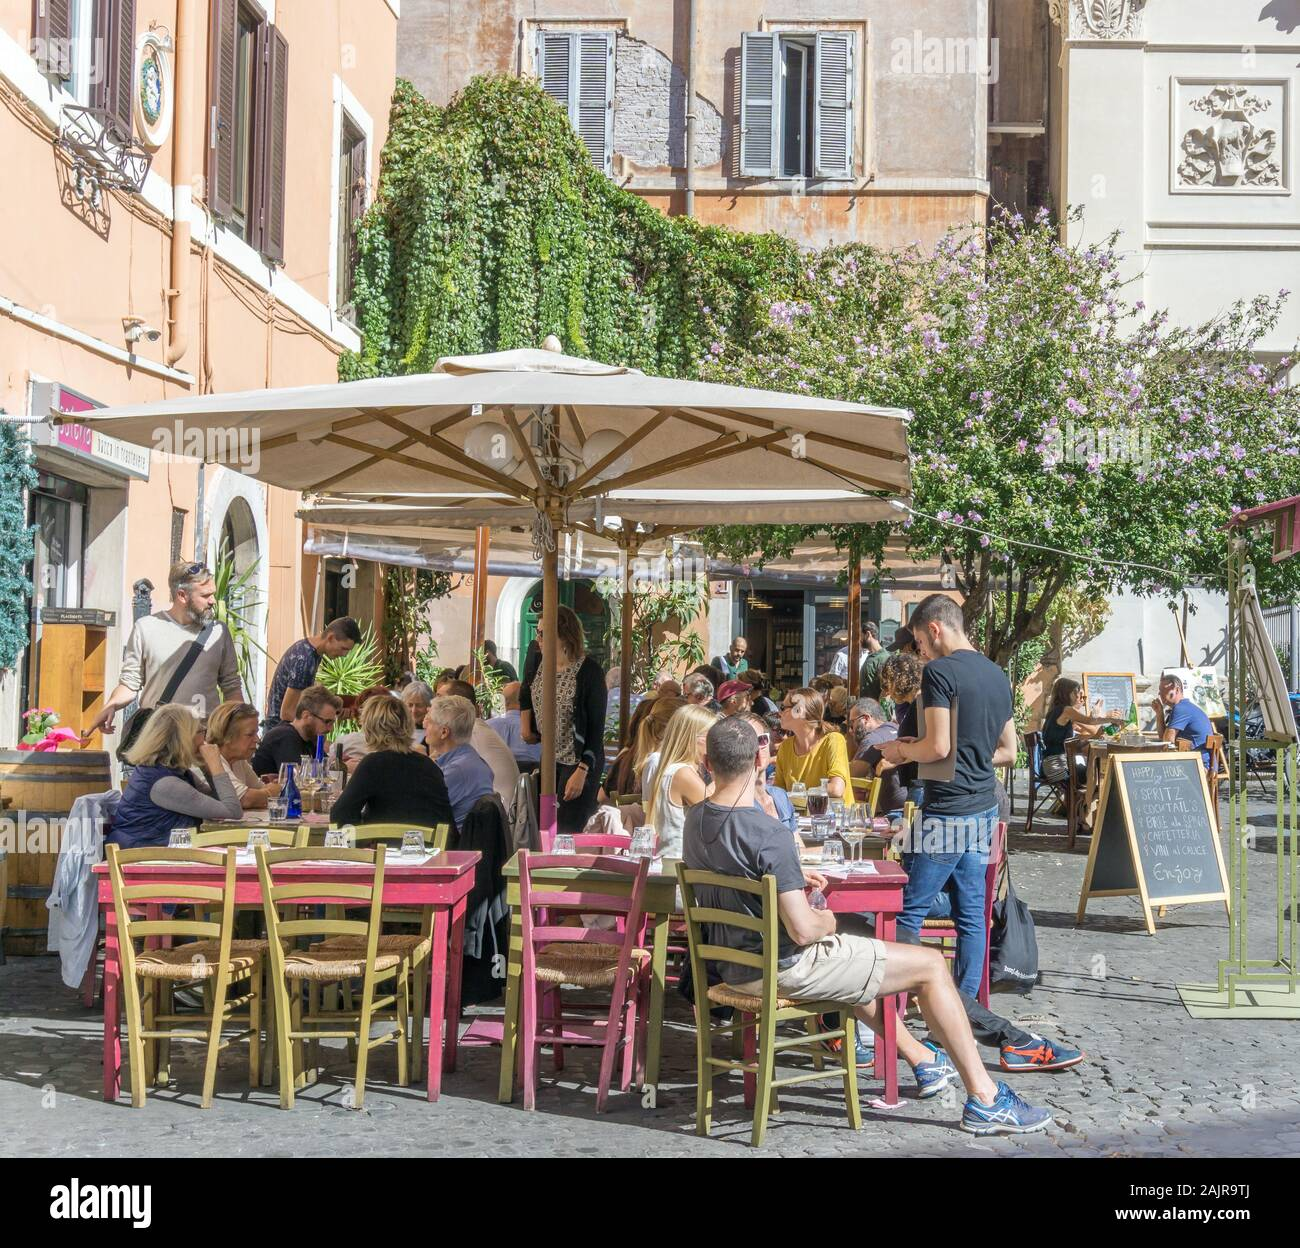 ROME, ITALY - OCTOBER 10, 2017: people are eating outdoors in a typical trattoria in Trastevere, historic district of Rome, Italy Stock Photo